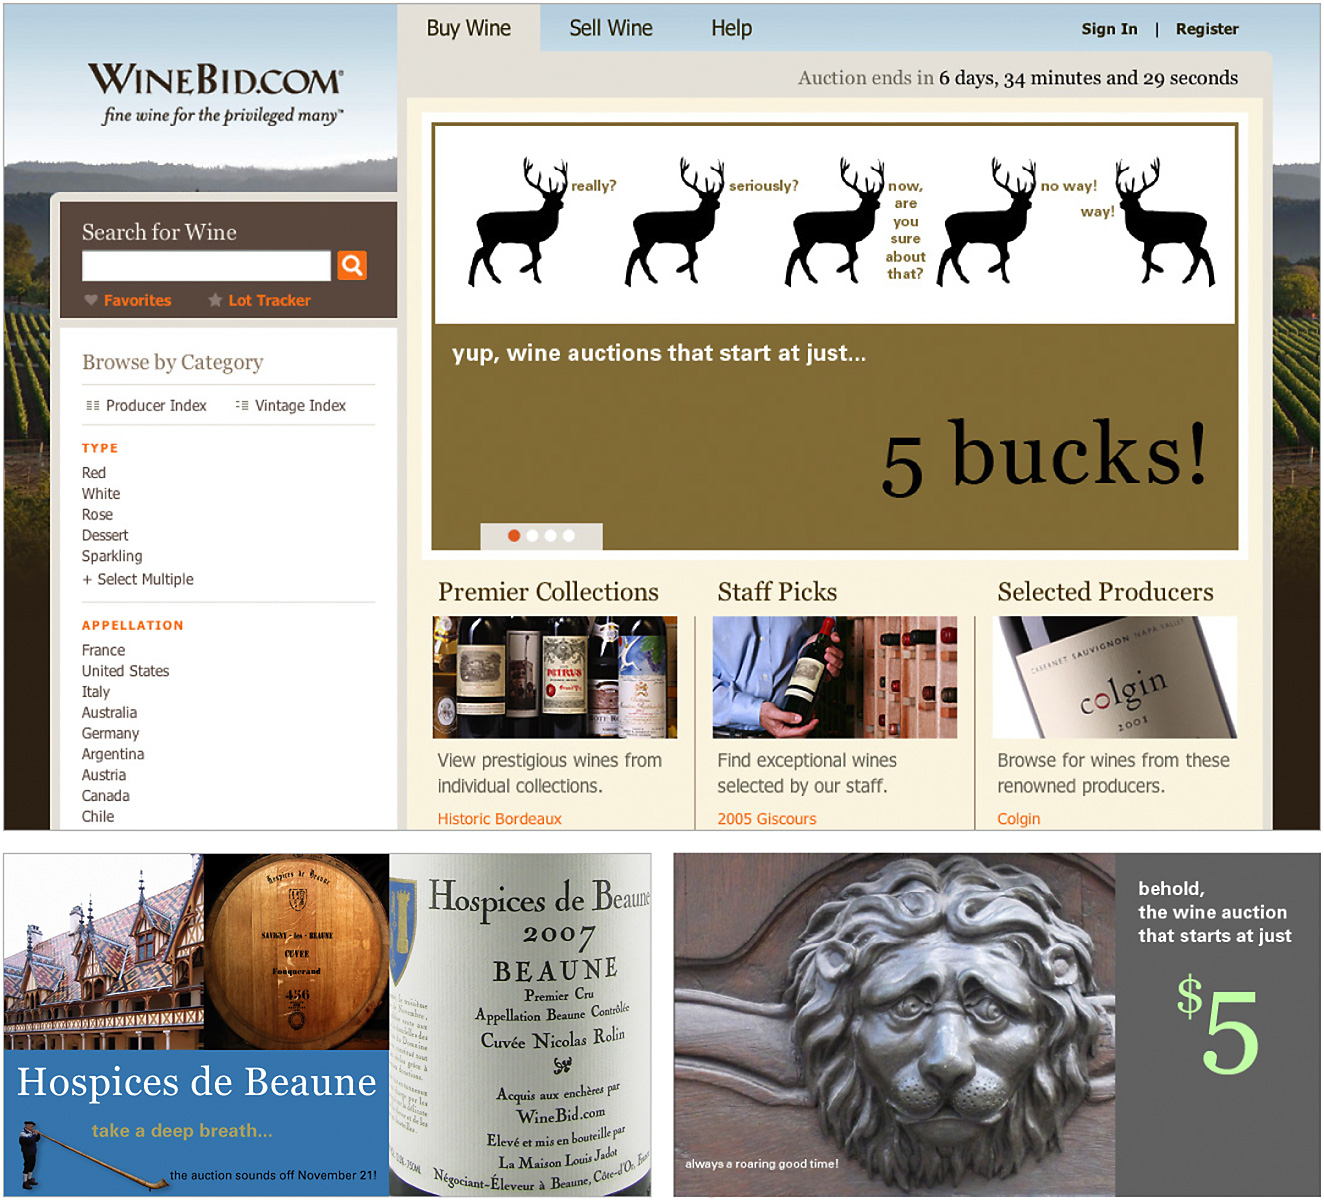 wine_bid-banner_ads-design